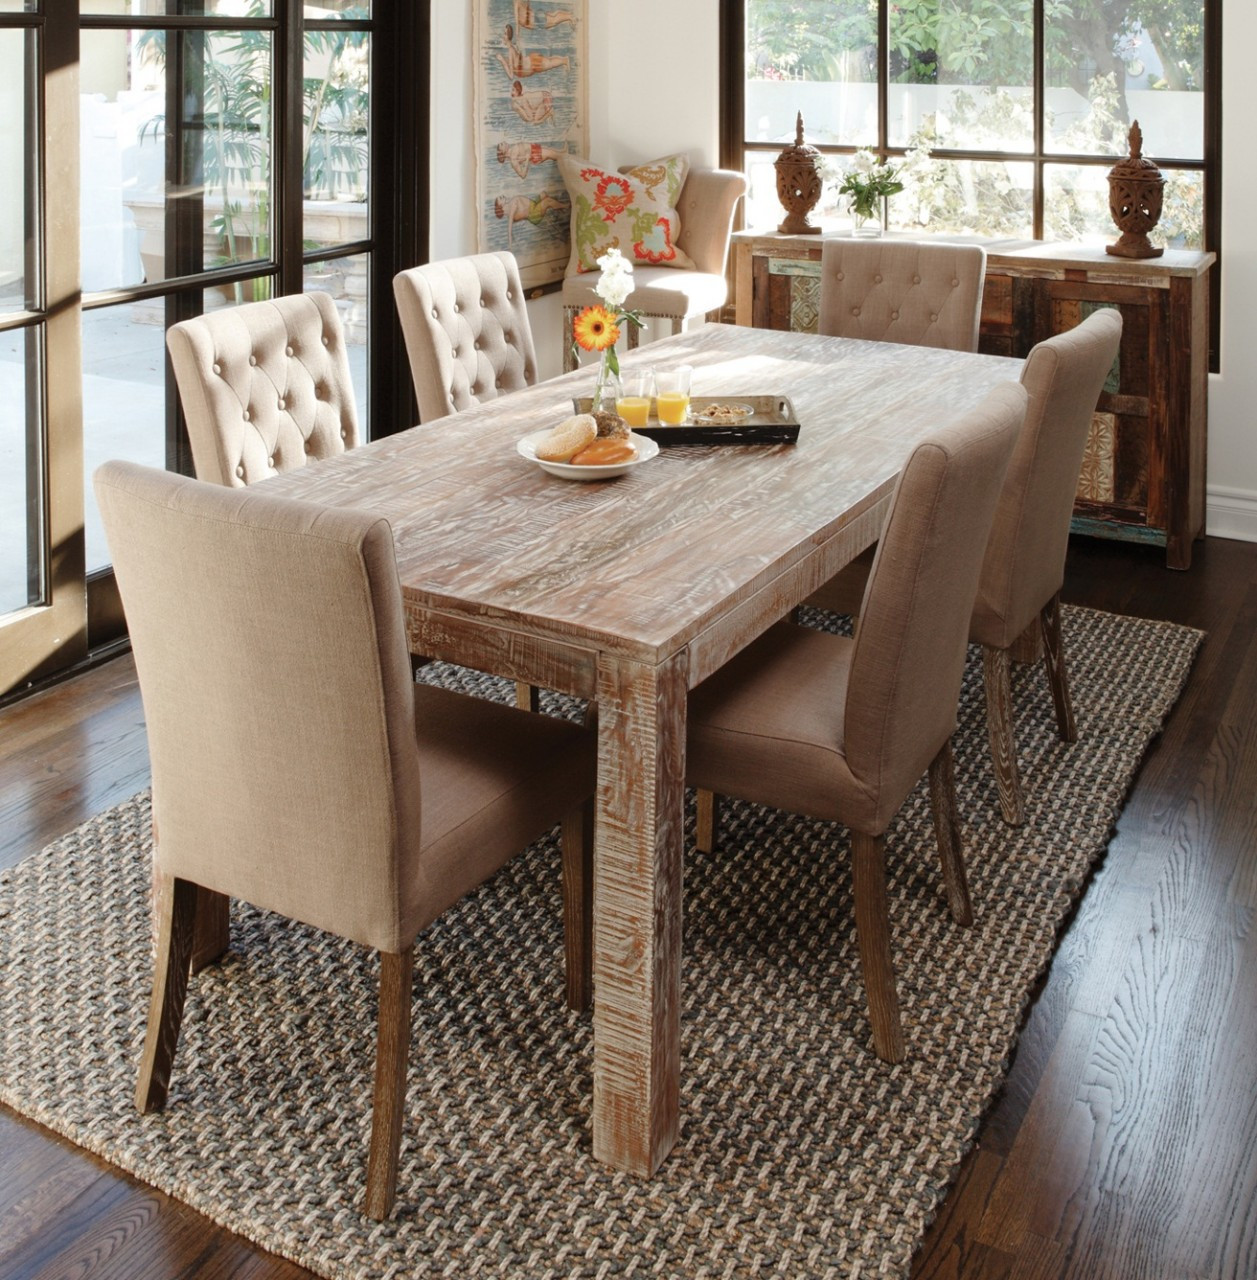 "60 Kitchen Table Endearing Hampton Teak Wood Farmhouse Dining Room Table 60""  Zin Home Decorating Design"